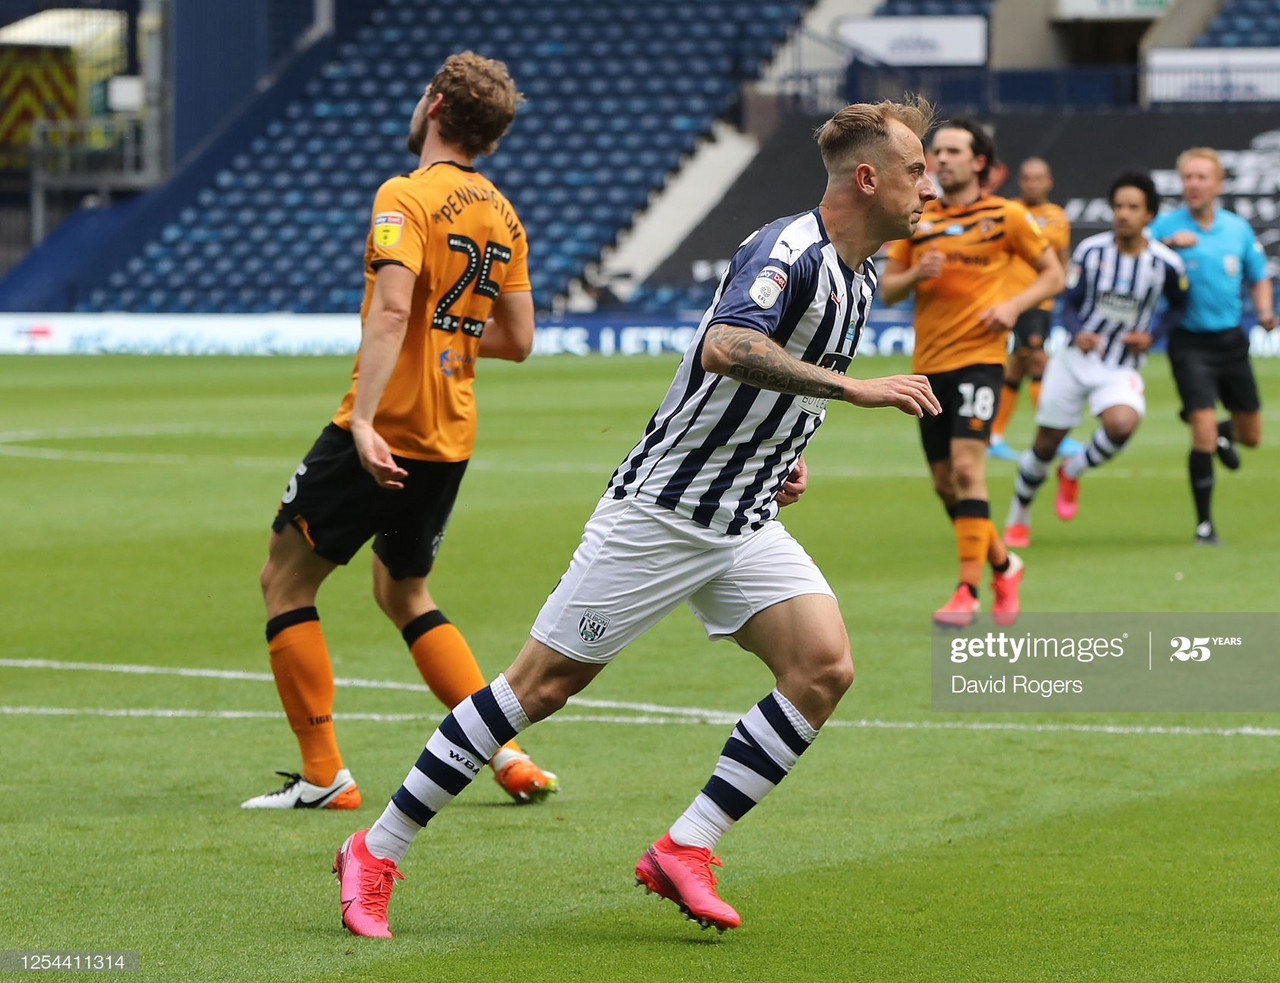 West Brom 4-2 Hull City: Baggies too hot to handle for the Tigers